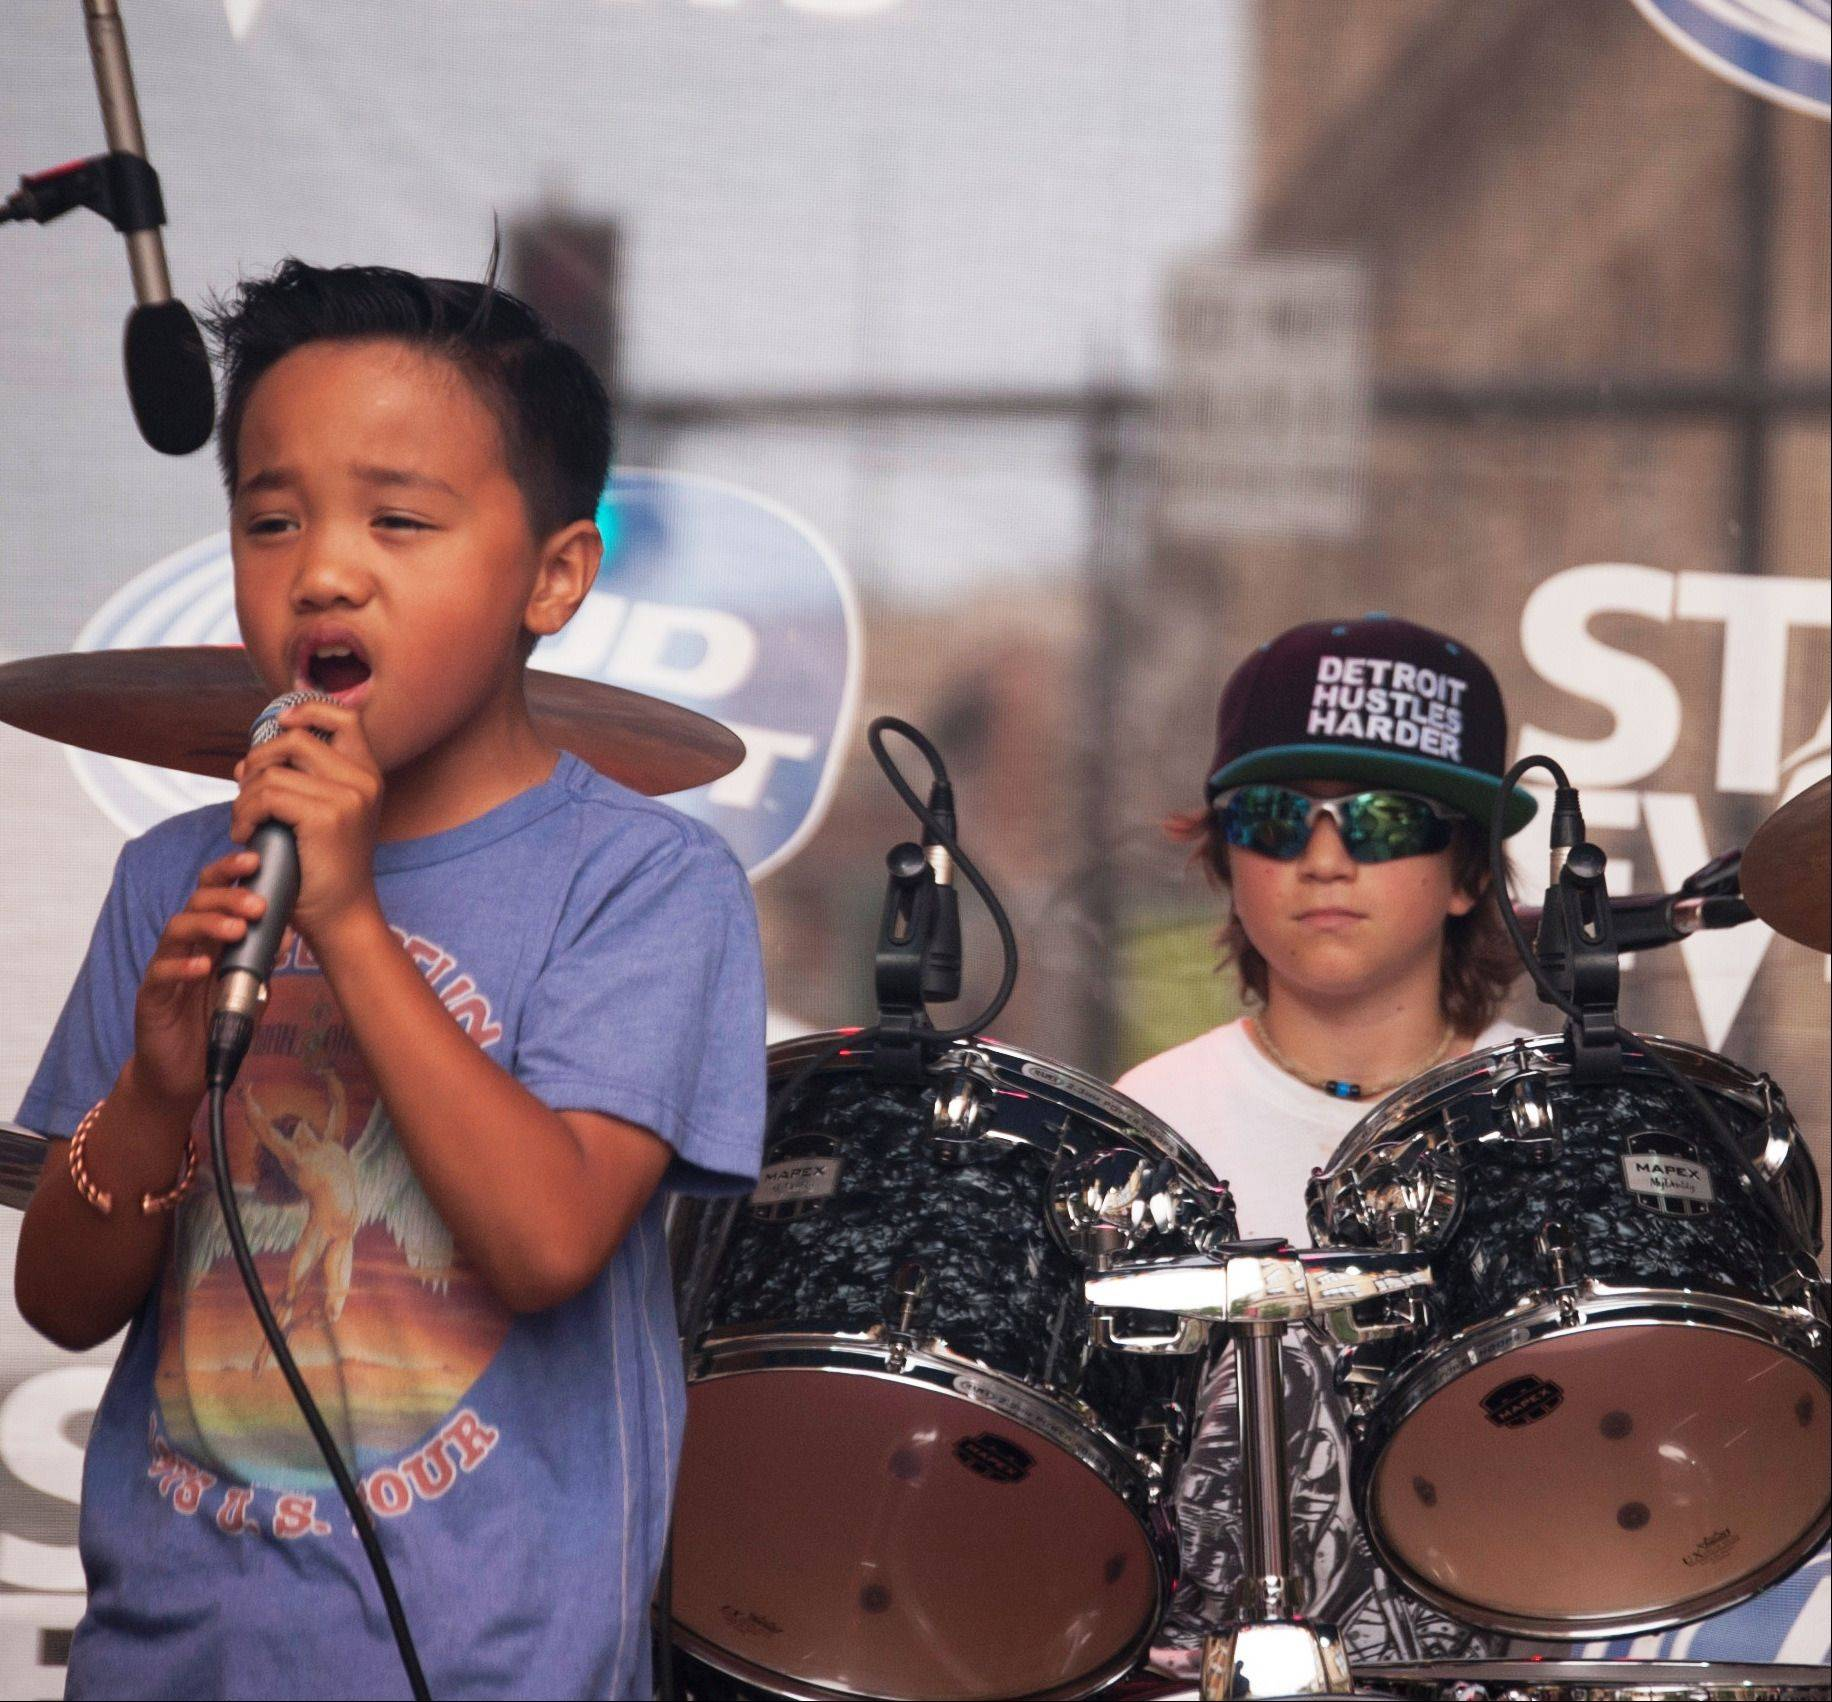 Lead vocalist Nikko Viejon, 8, of North Aurora, with drummer Cohen Bessler, 10, of St. Charles, in the background, during LiveWire's performance July 6 at Taste of Lakeview in Chicago.